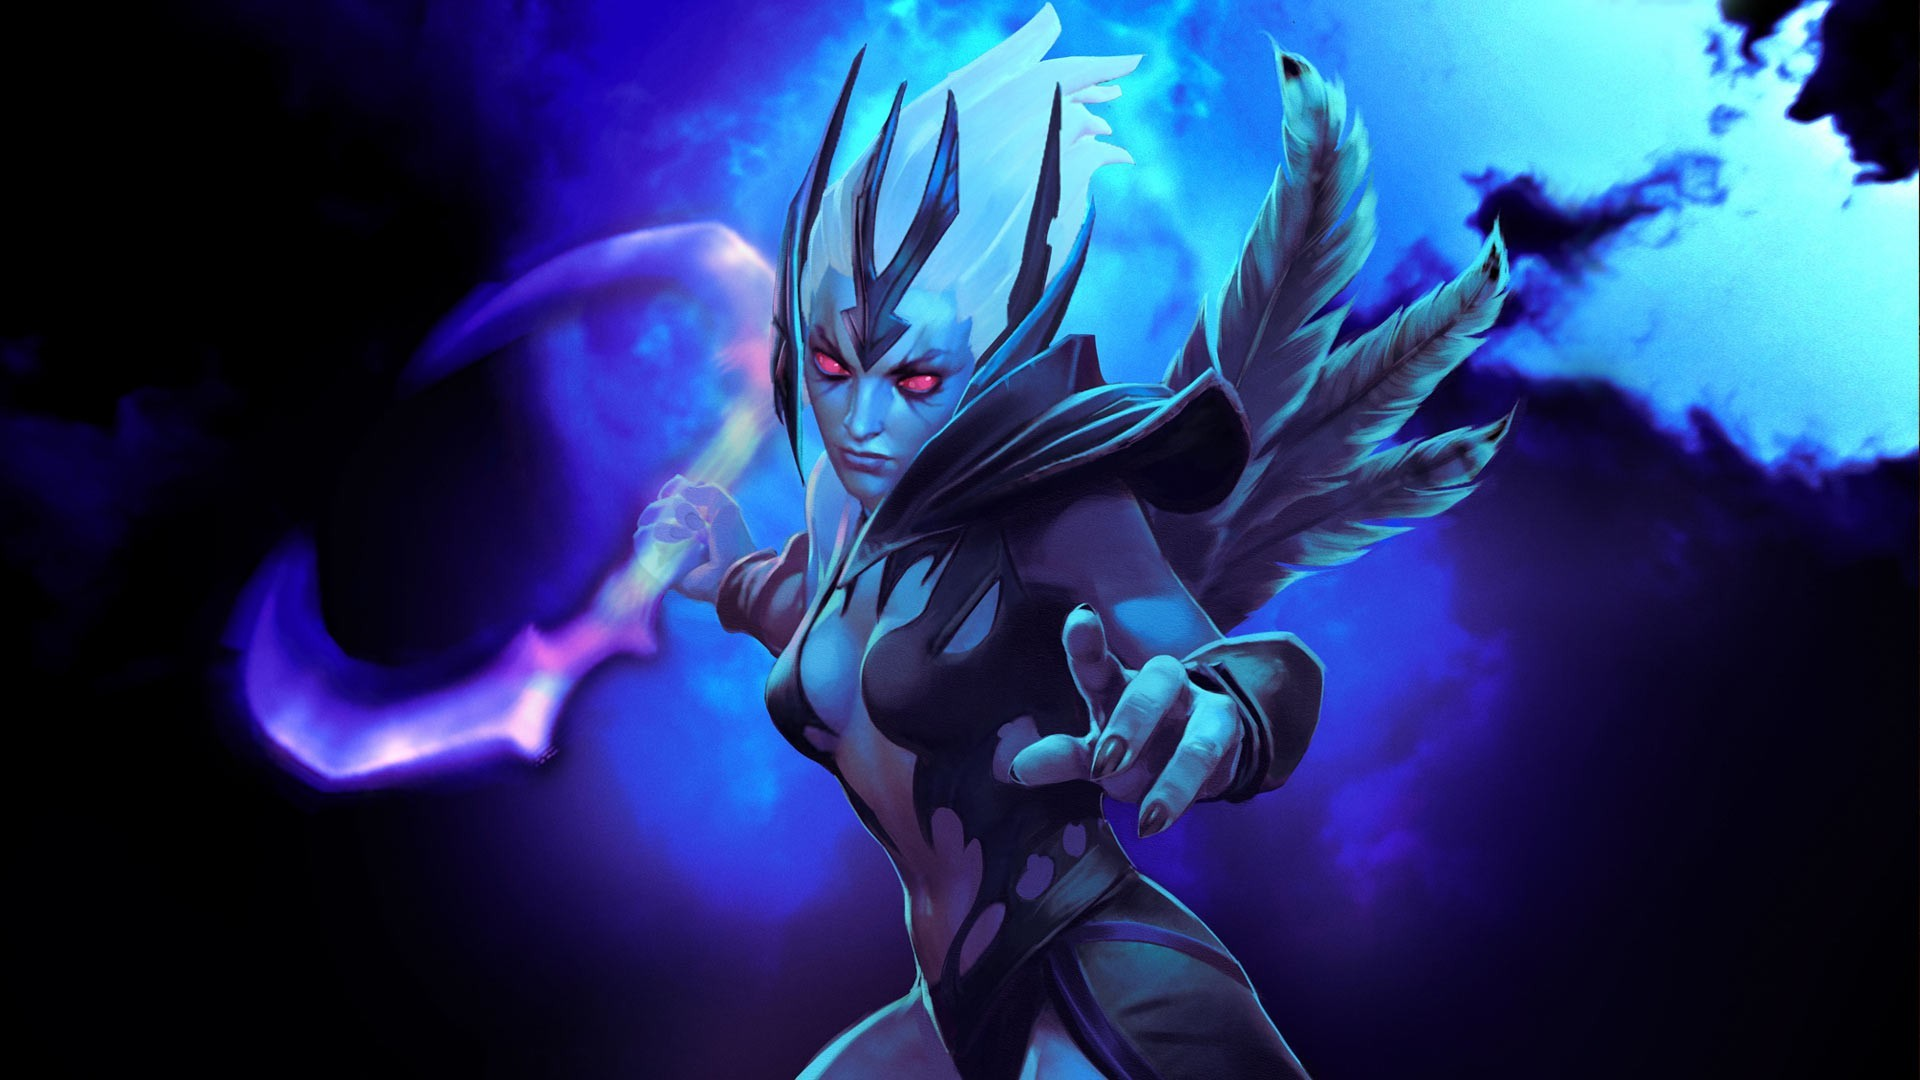 General 1920x1080 Dota 2 fantasy girl video games